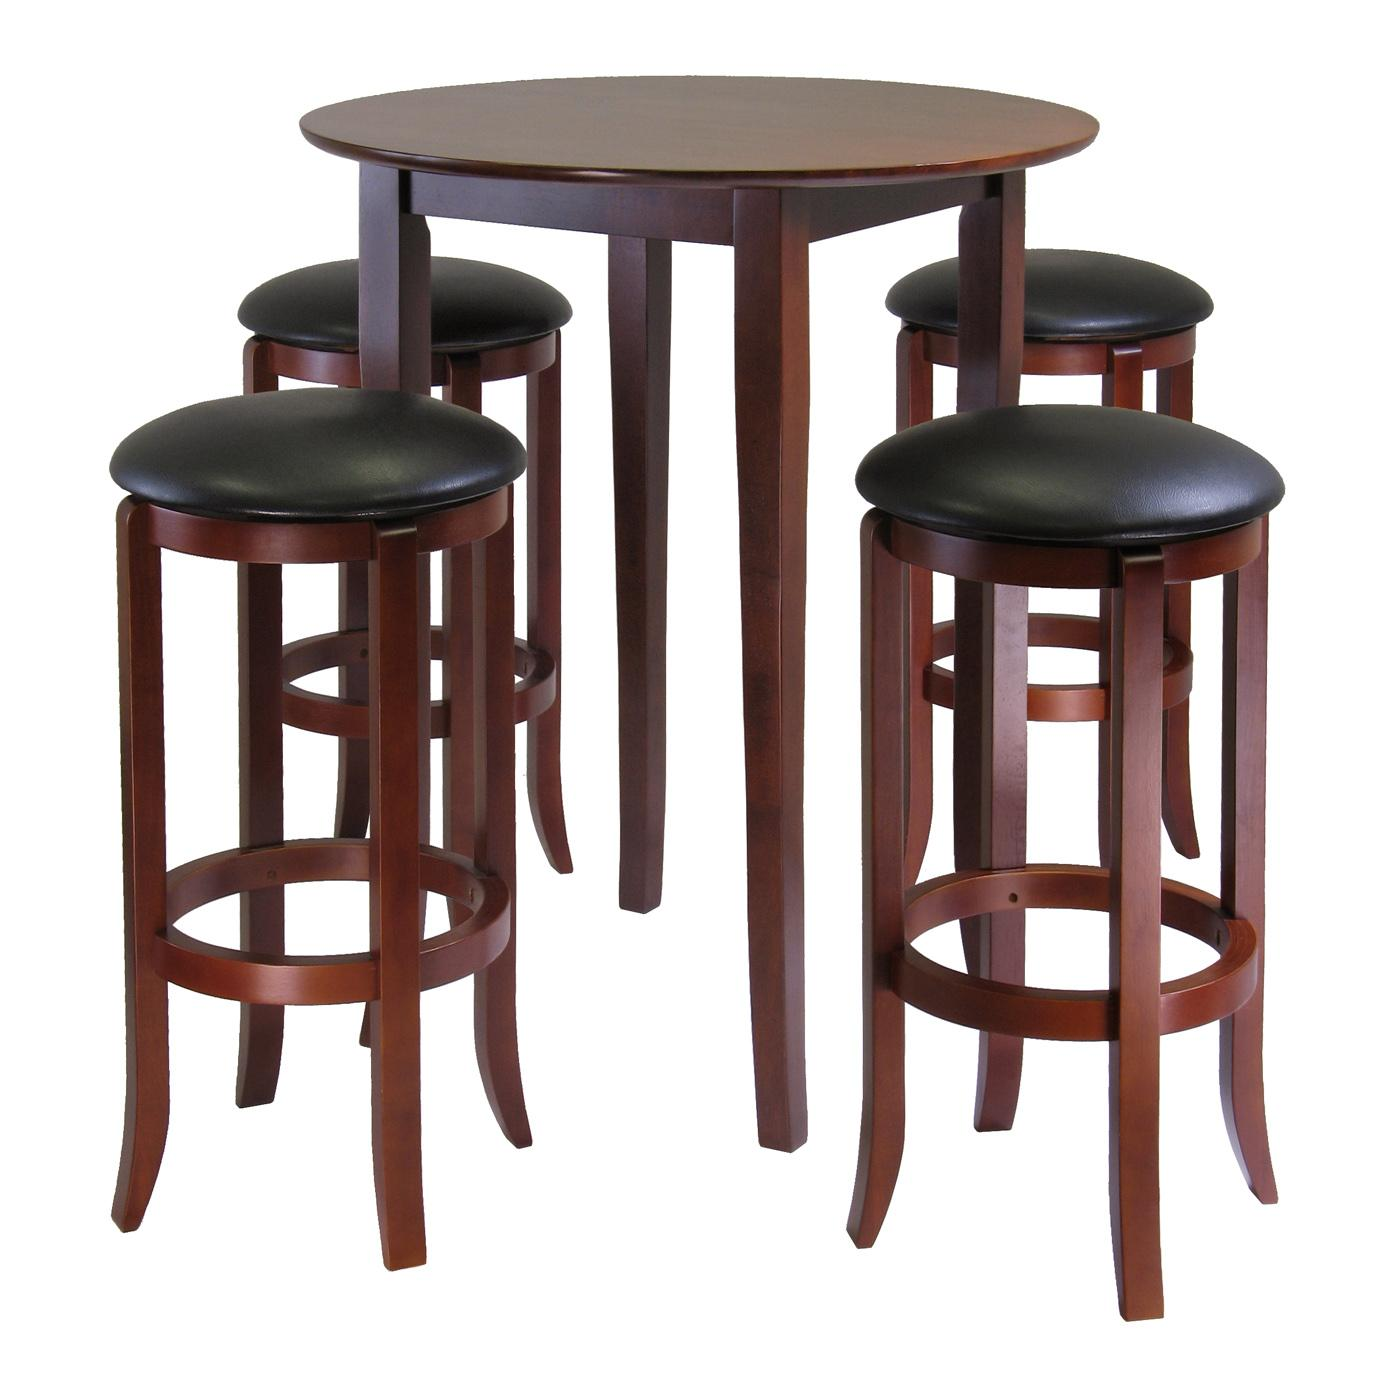 Winsome fiona 5 piece round high pub table set for Breakfast table with stools